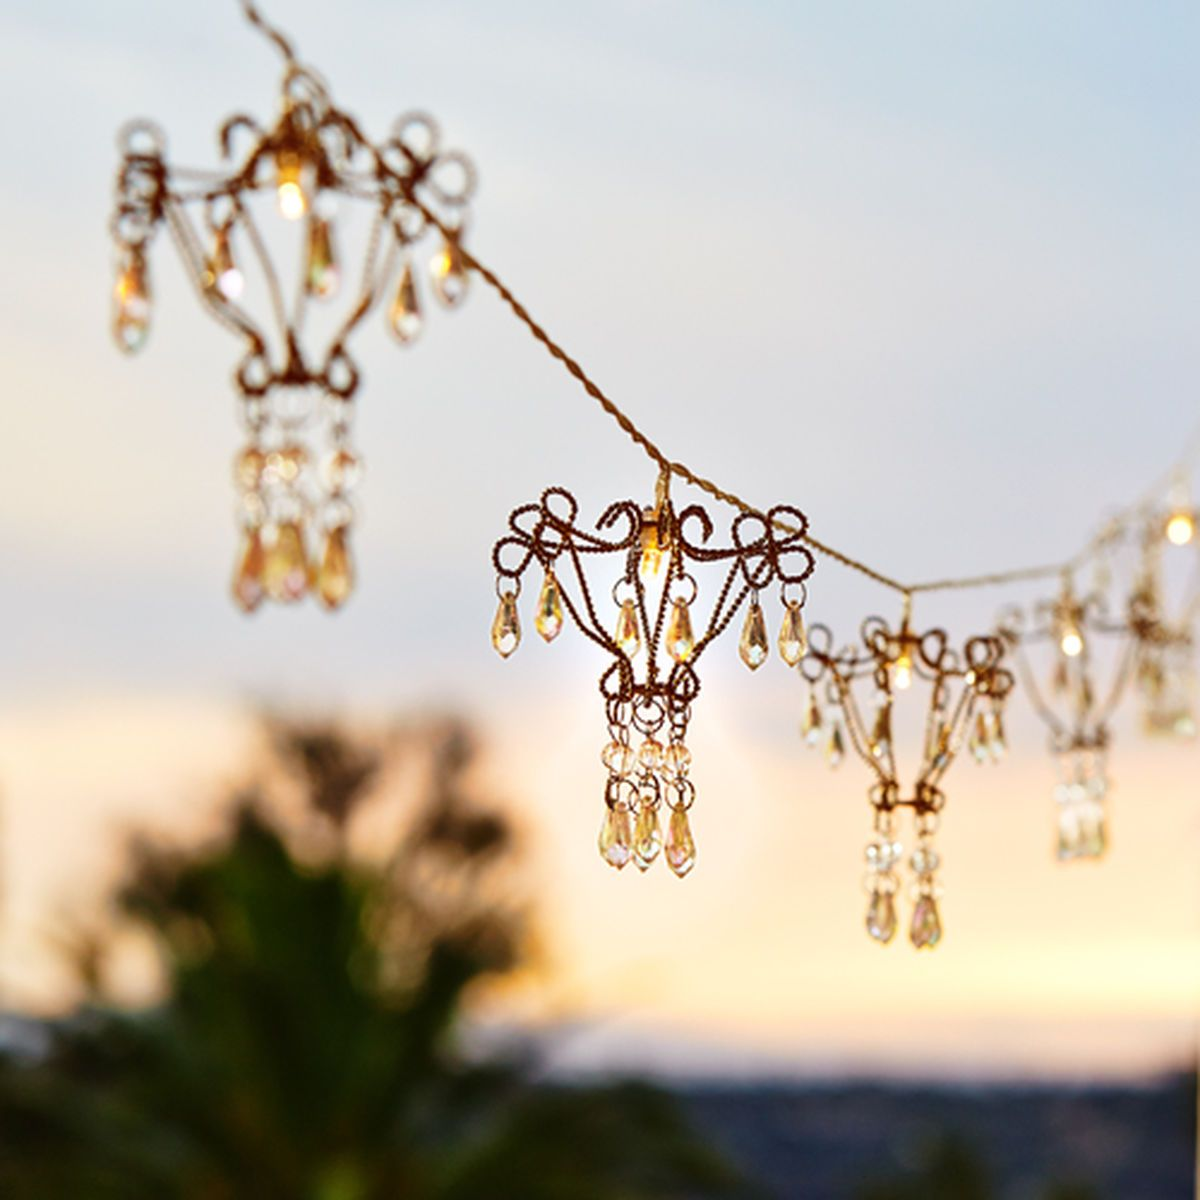 Chandelier led string lights pier 1 imports wedding chandelier led string lights pier 1 imports mozeypictures Gallery